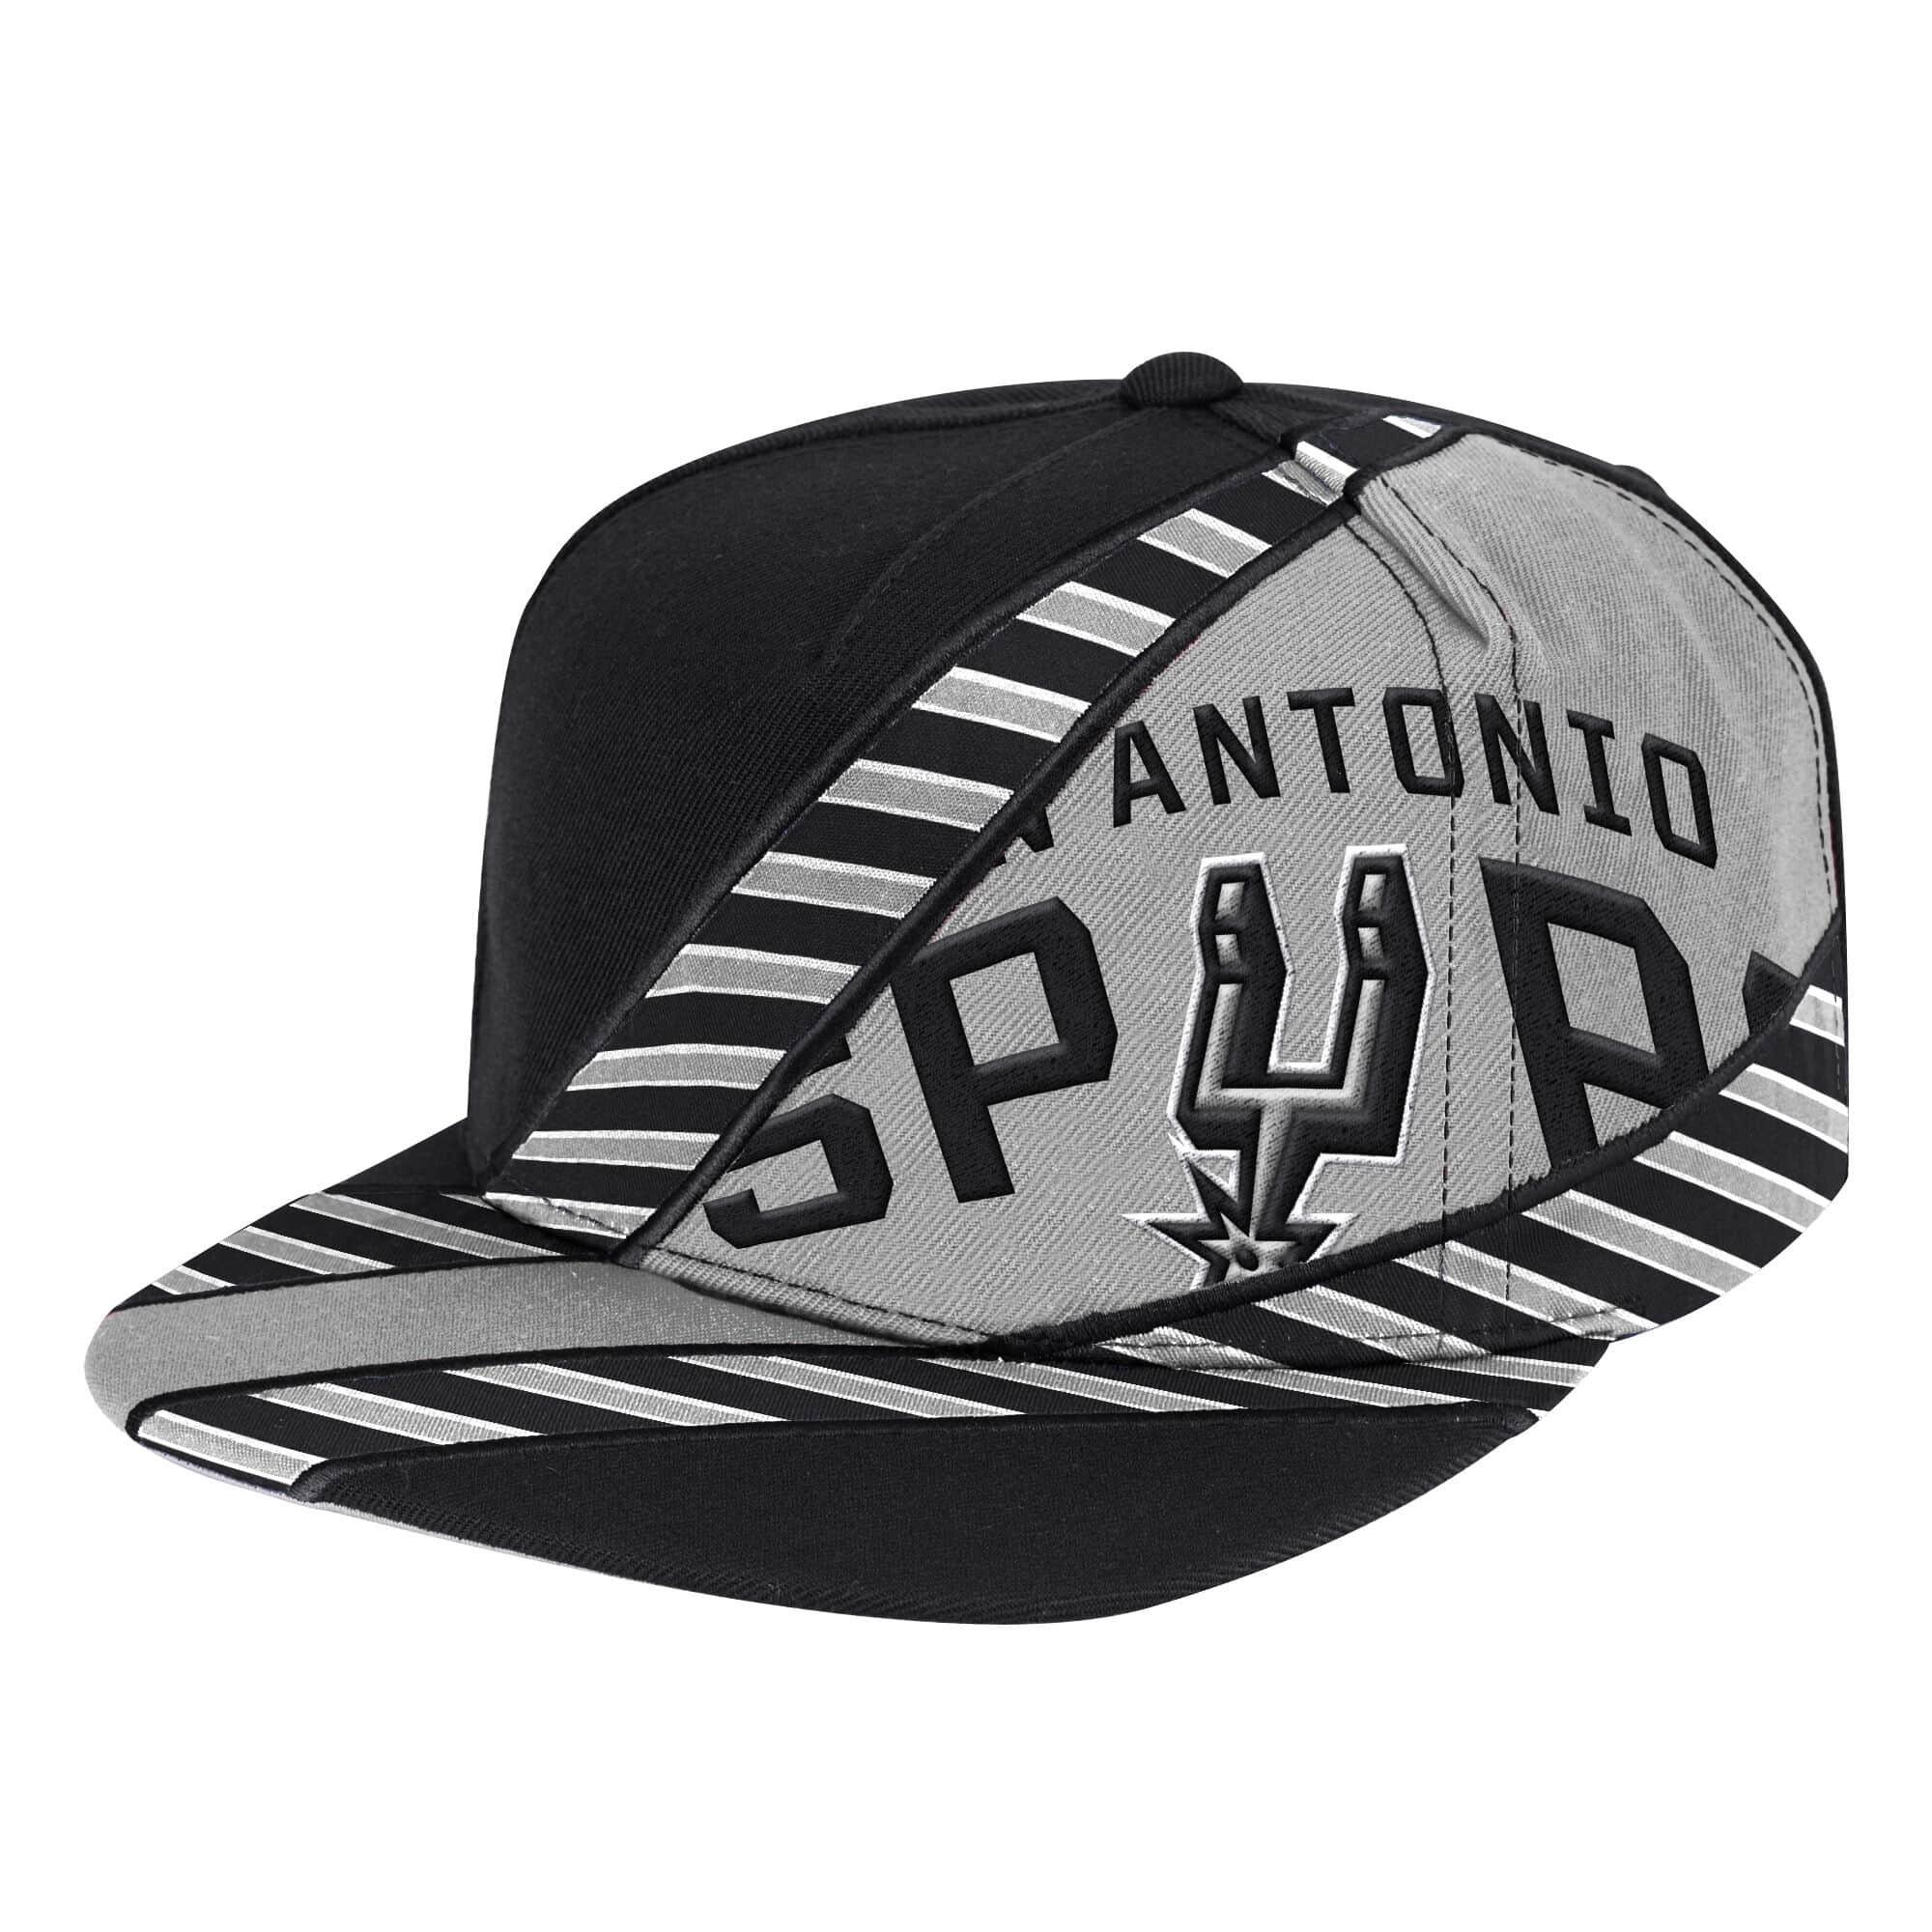 Team DNA Inset Snapback San Antonio Spurs